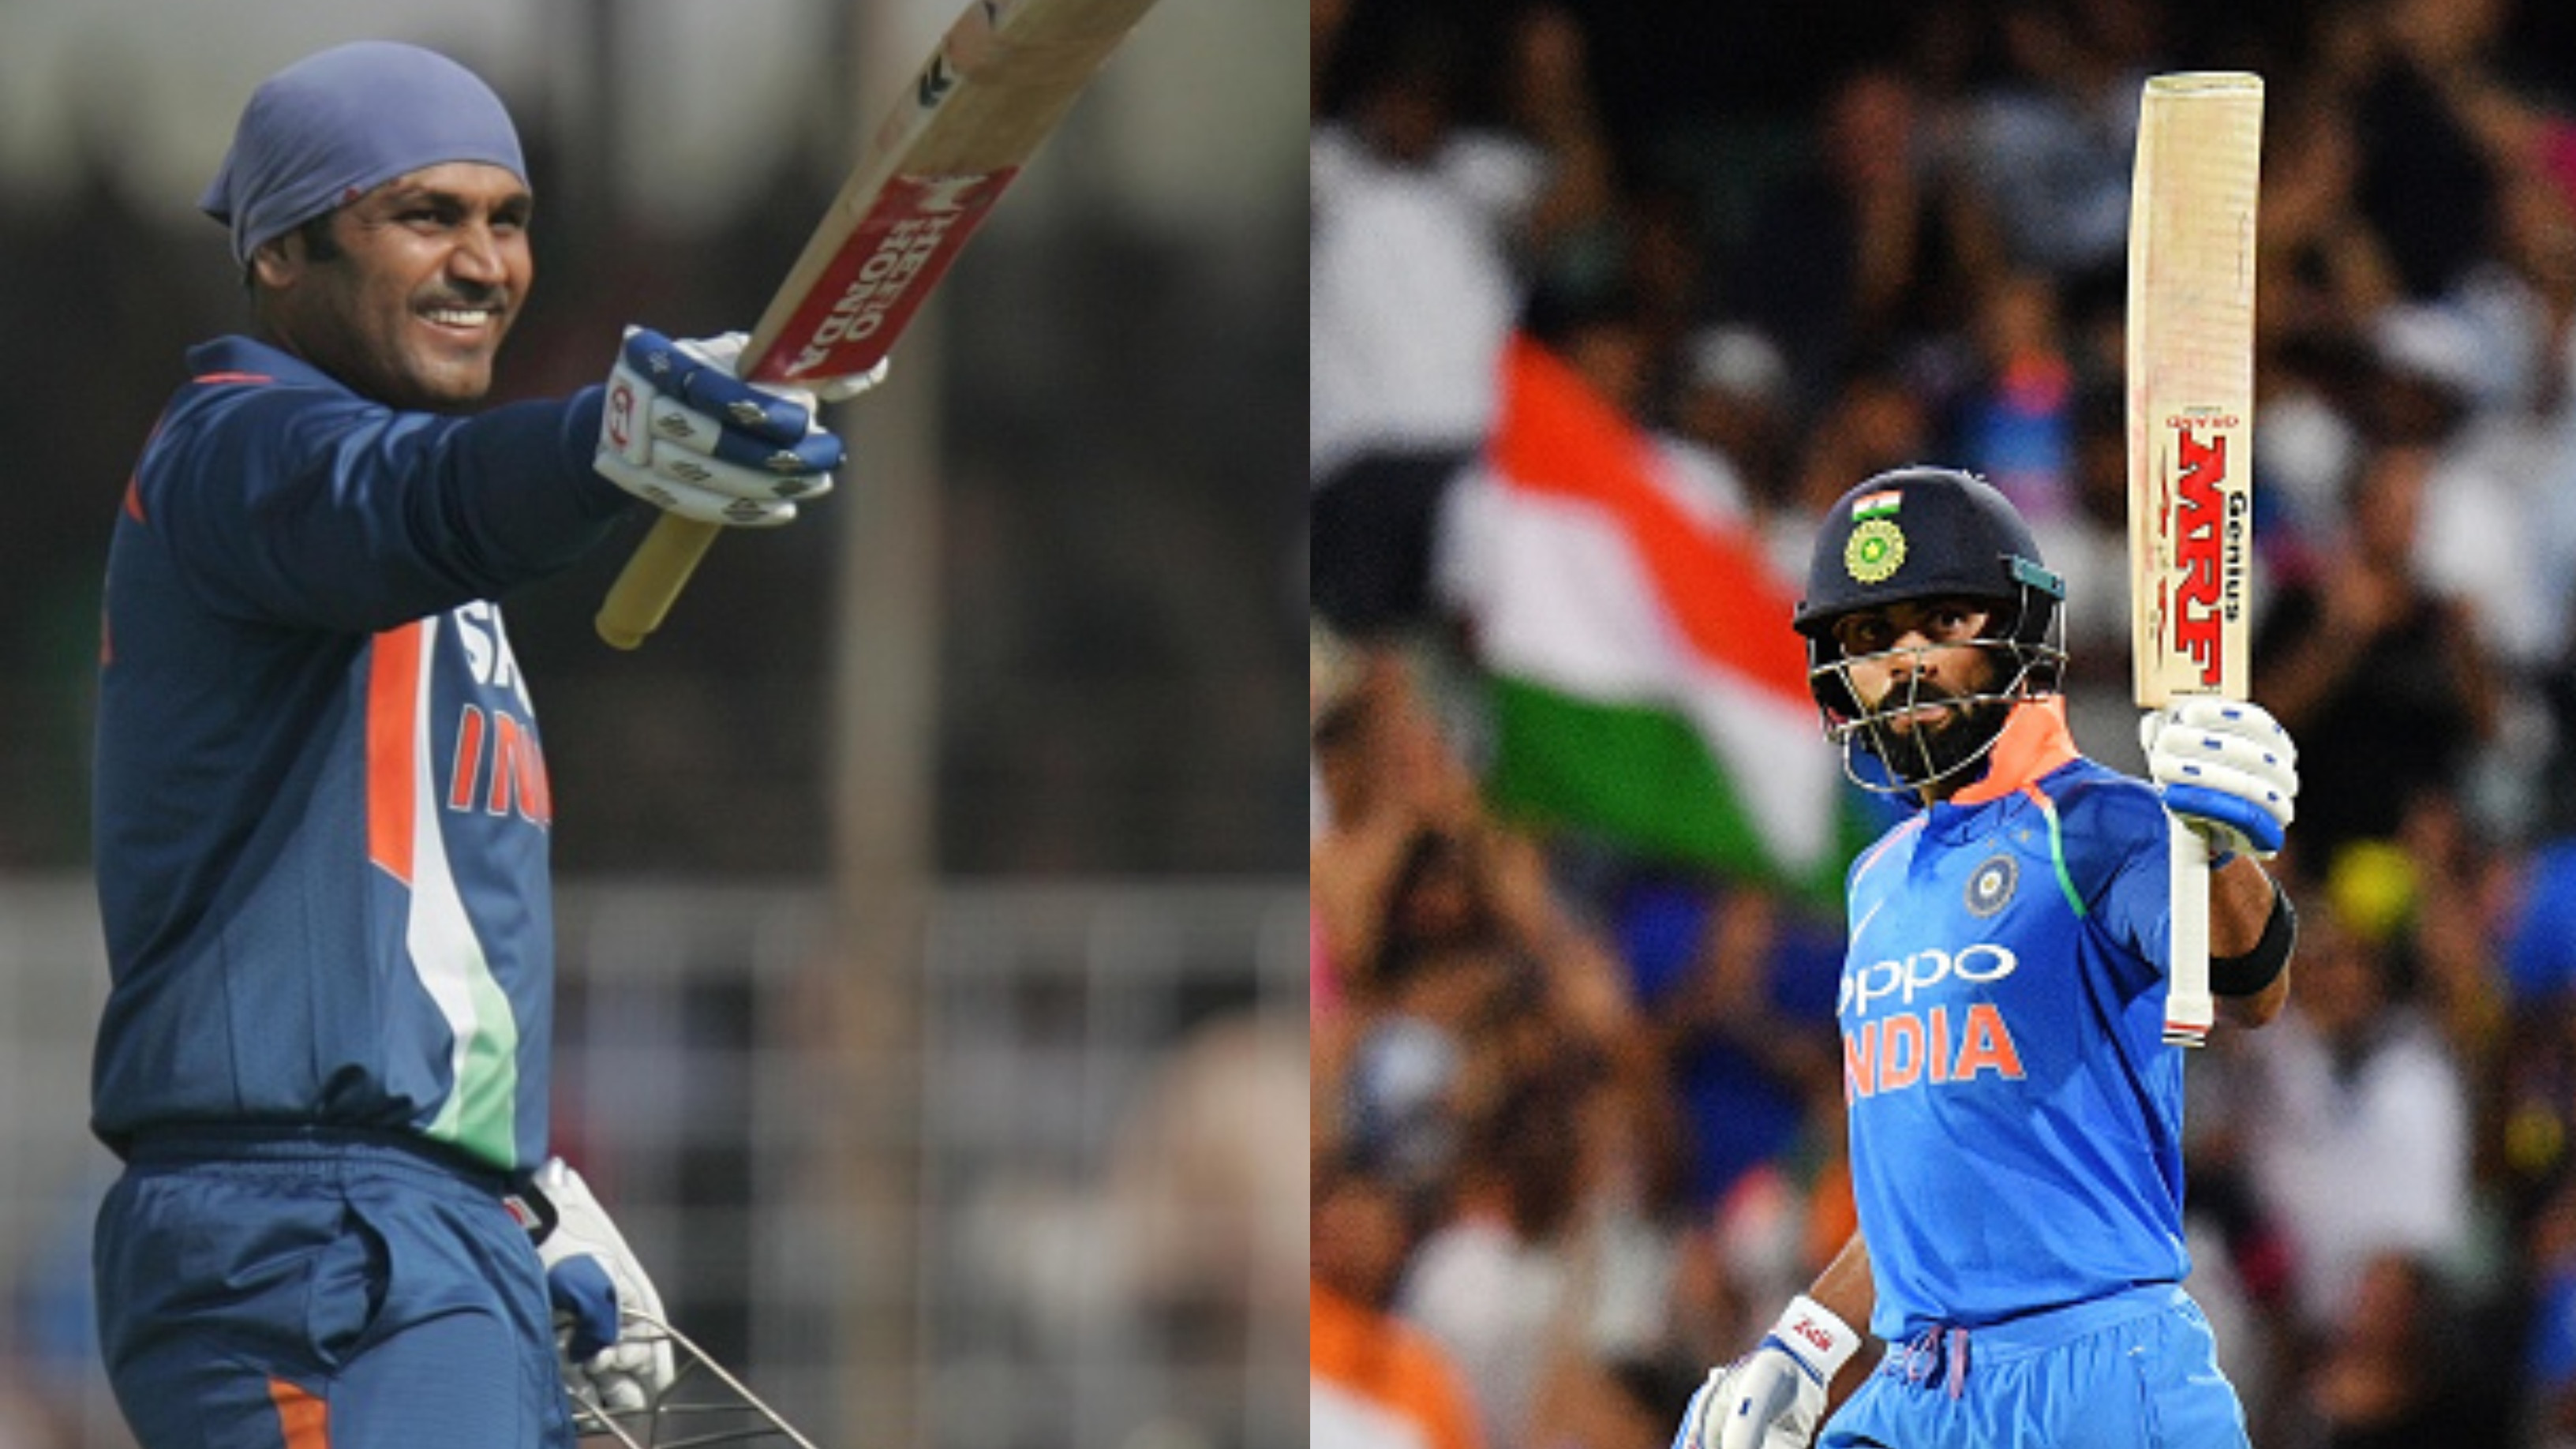 NZ v IND 2019: Virat Kohli on the cusp of breaking Virender Sehwag's multiple records against New Zealand